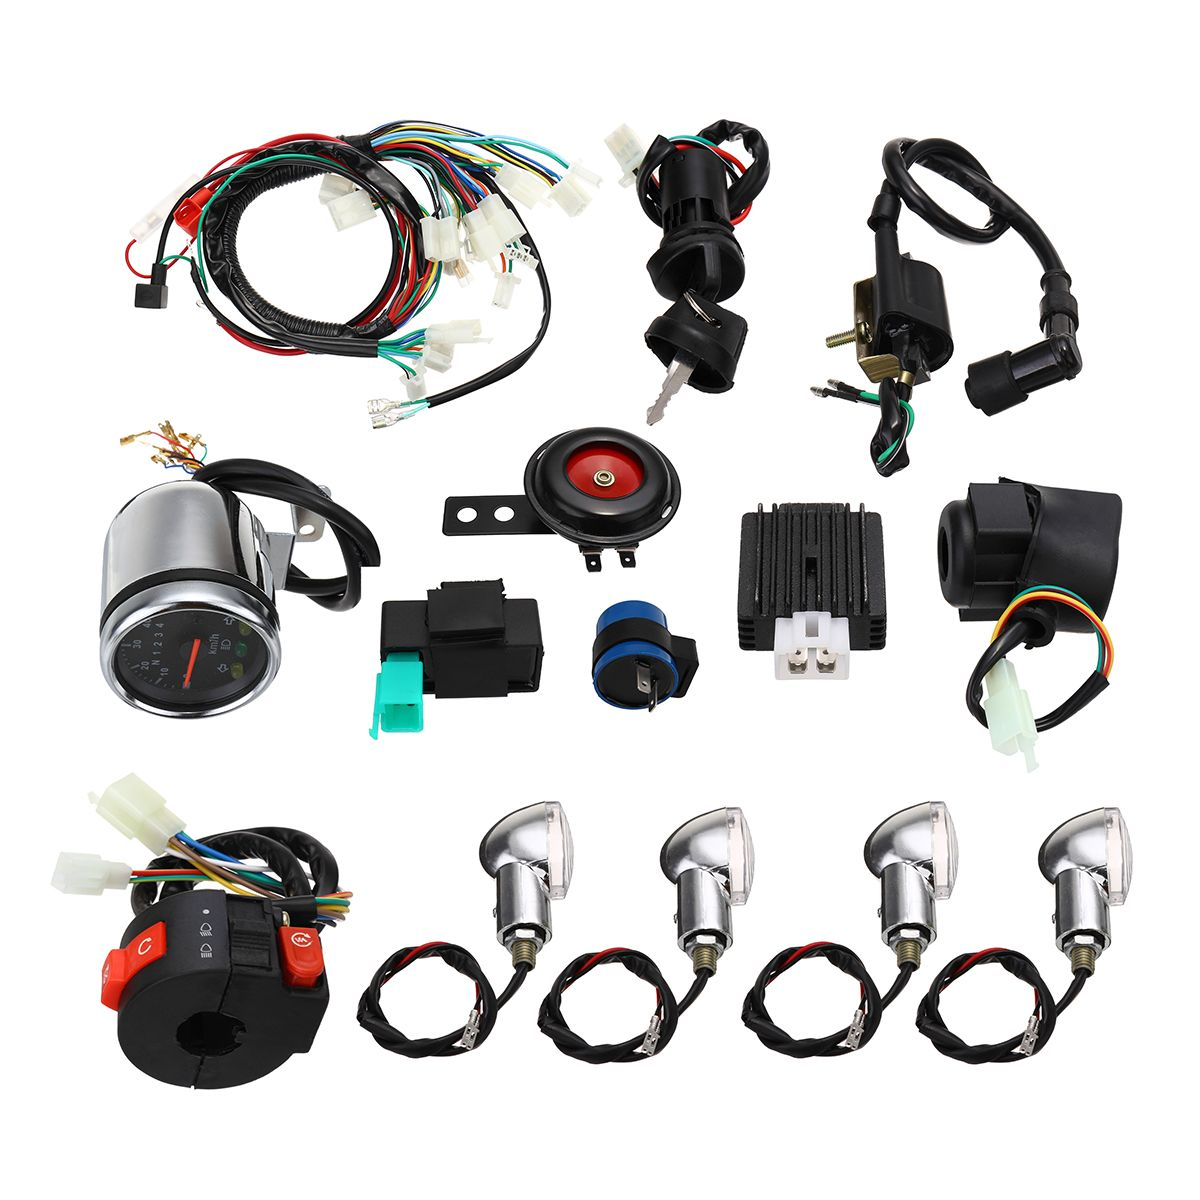 medium resolution of  us 53 99 full electric start engine wiring harness loom for cdi 110cc 125cc quad bike atv full electric start engine wiring harness loom cc cc